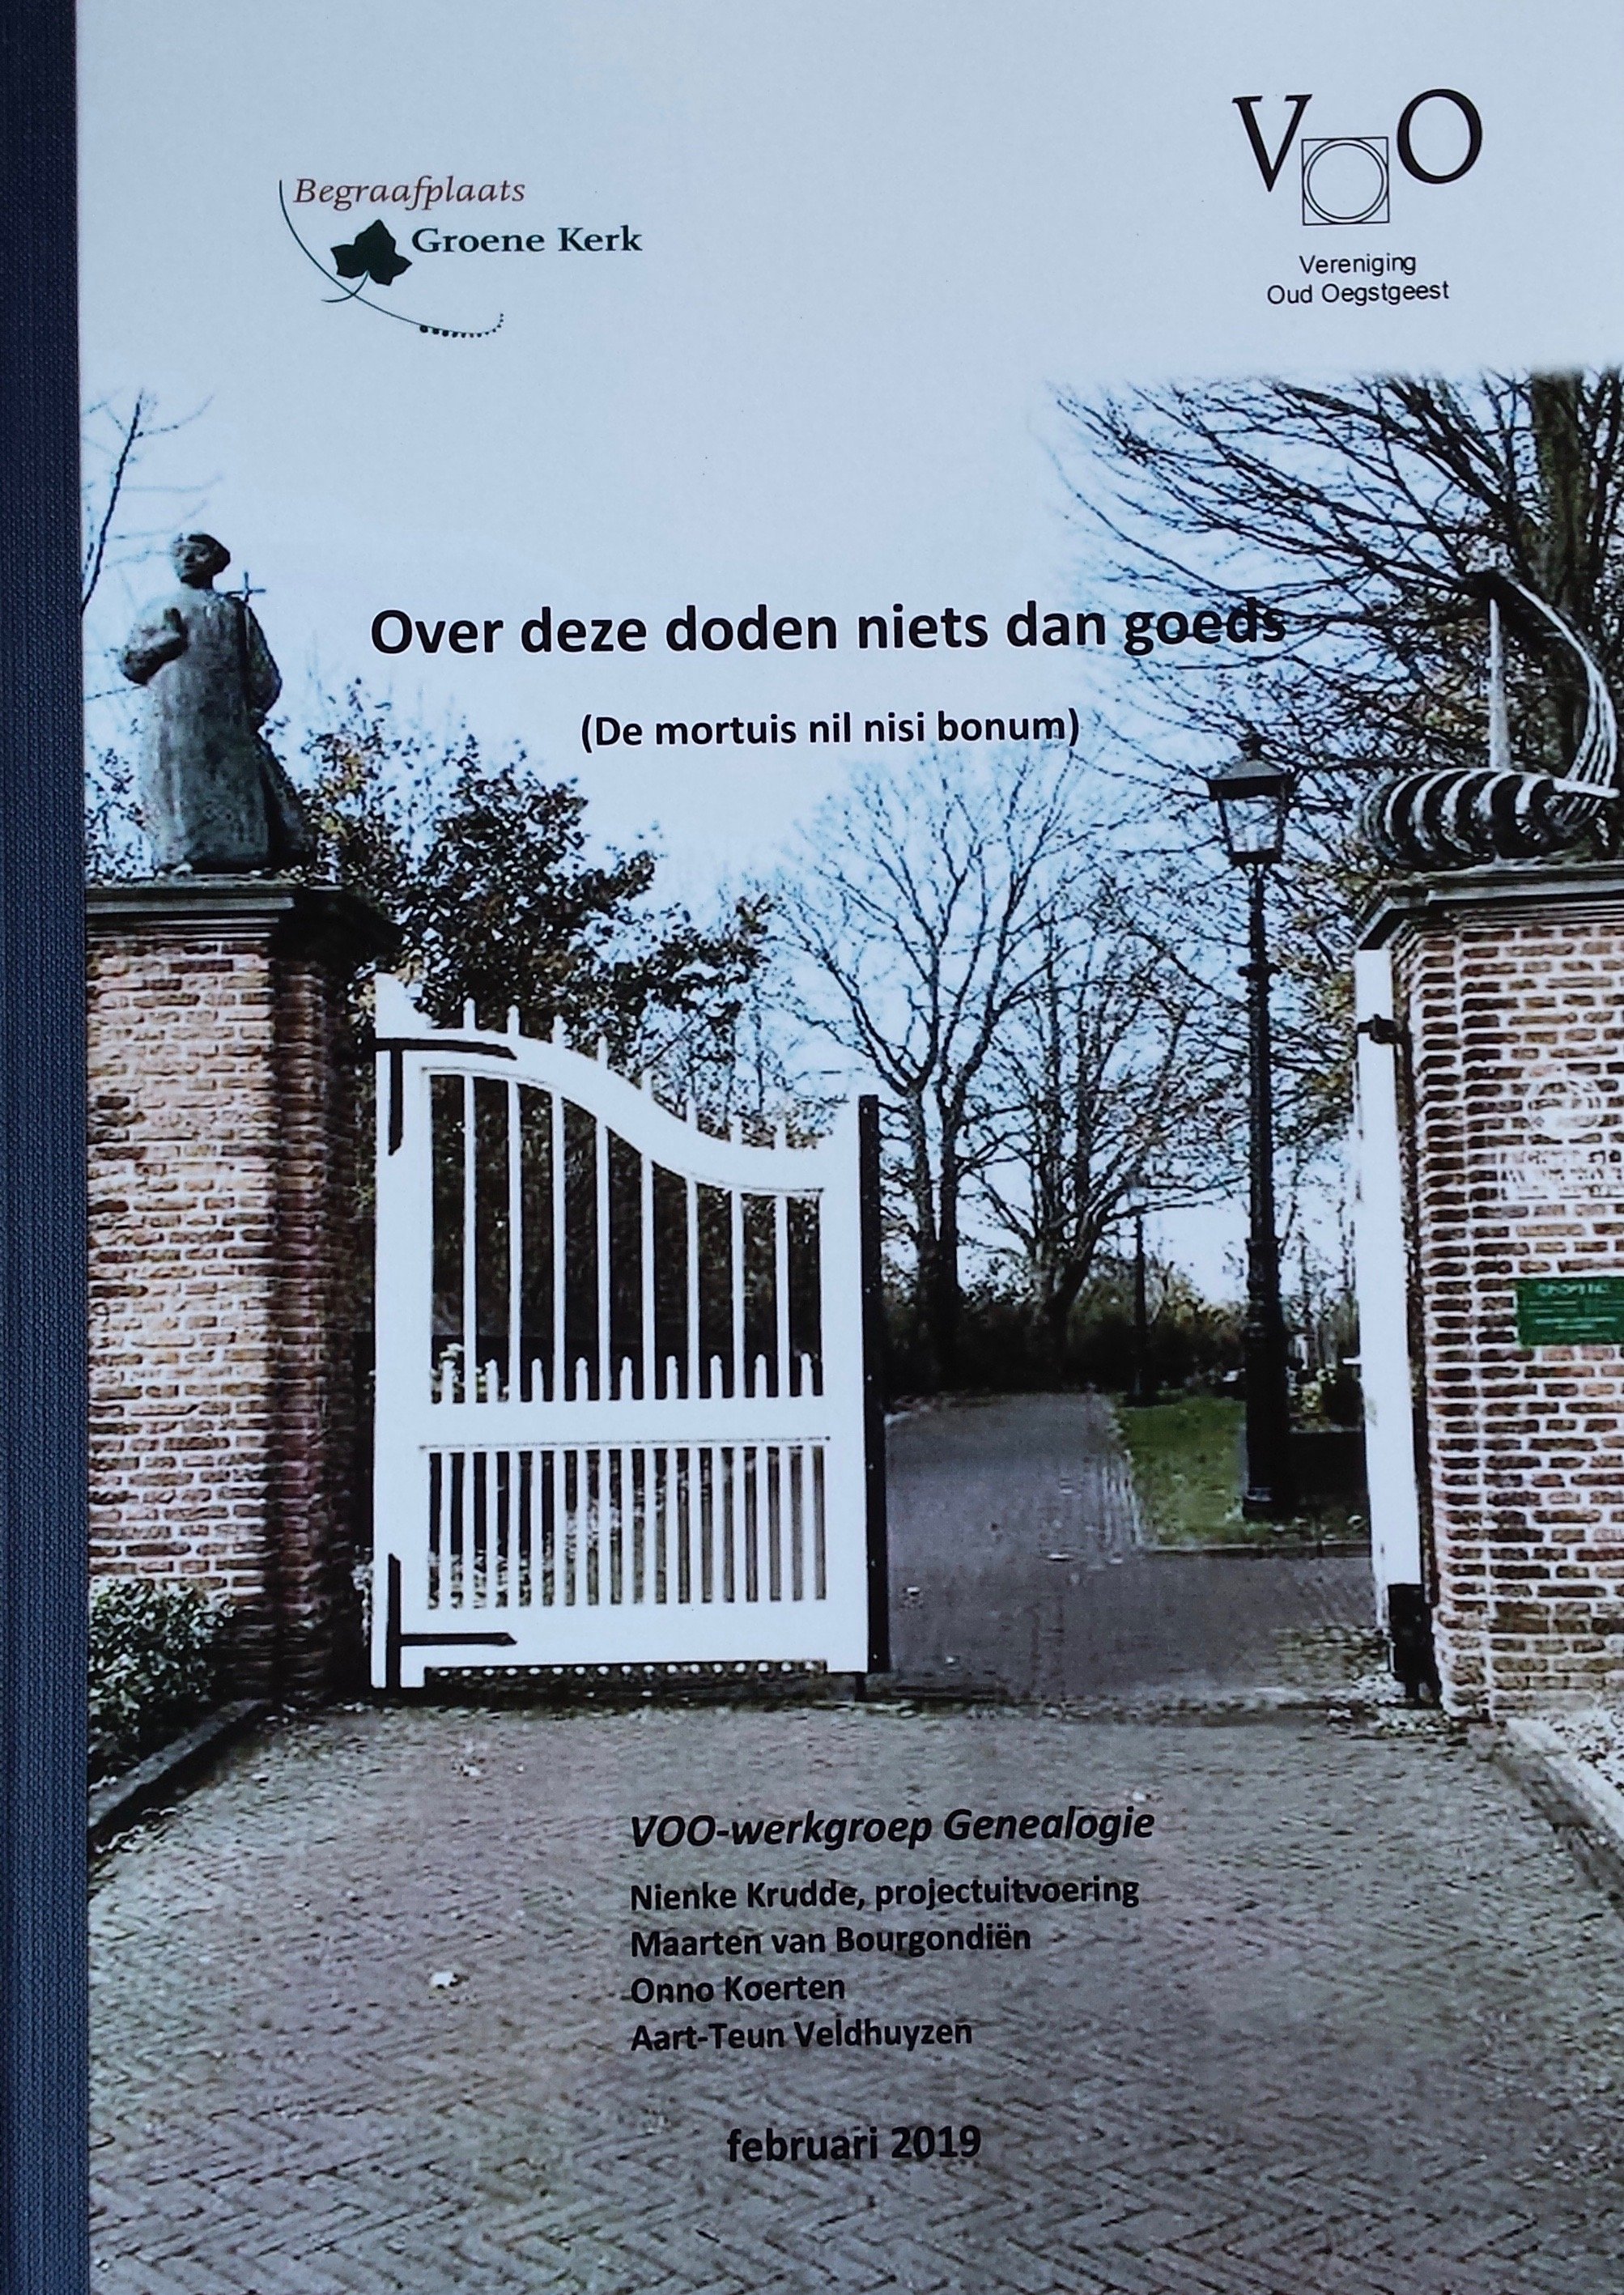 https://oudoegstgeest.nl/images/publicaties/Begraafplaats_GK.jpeg